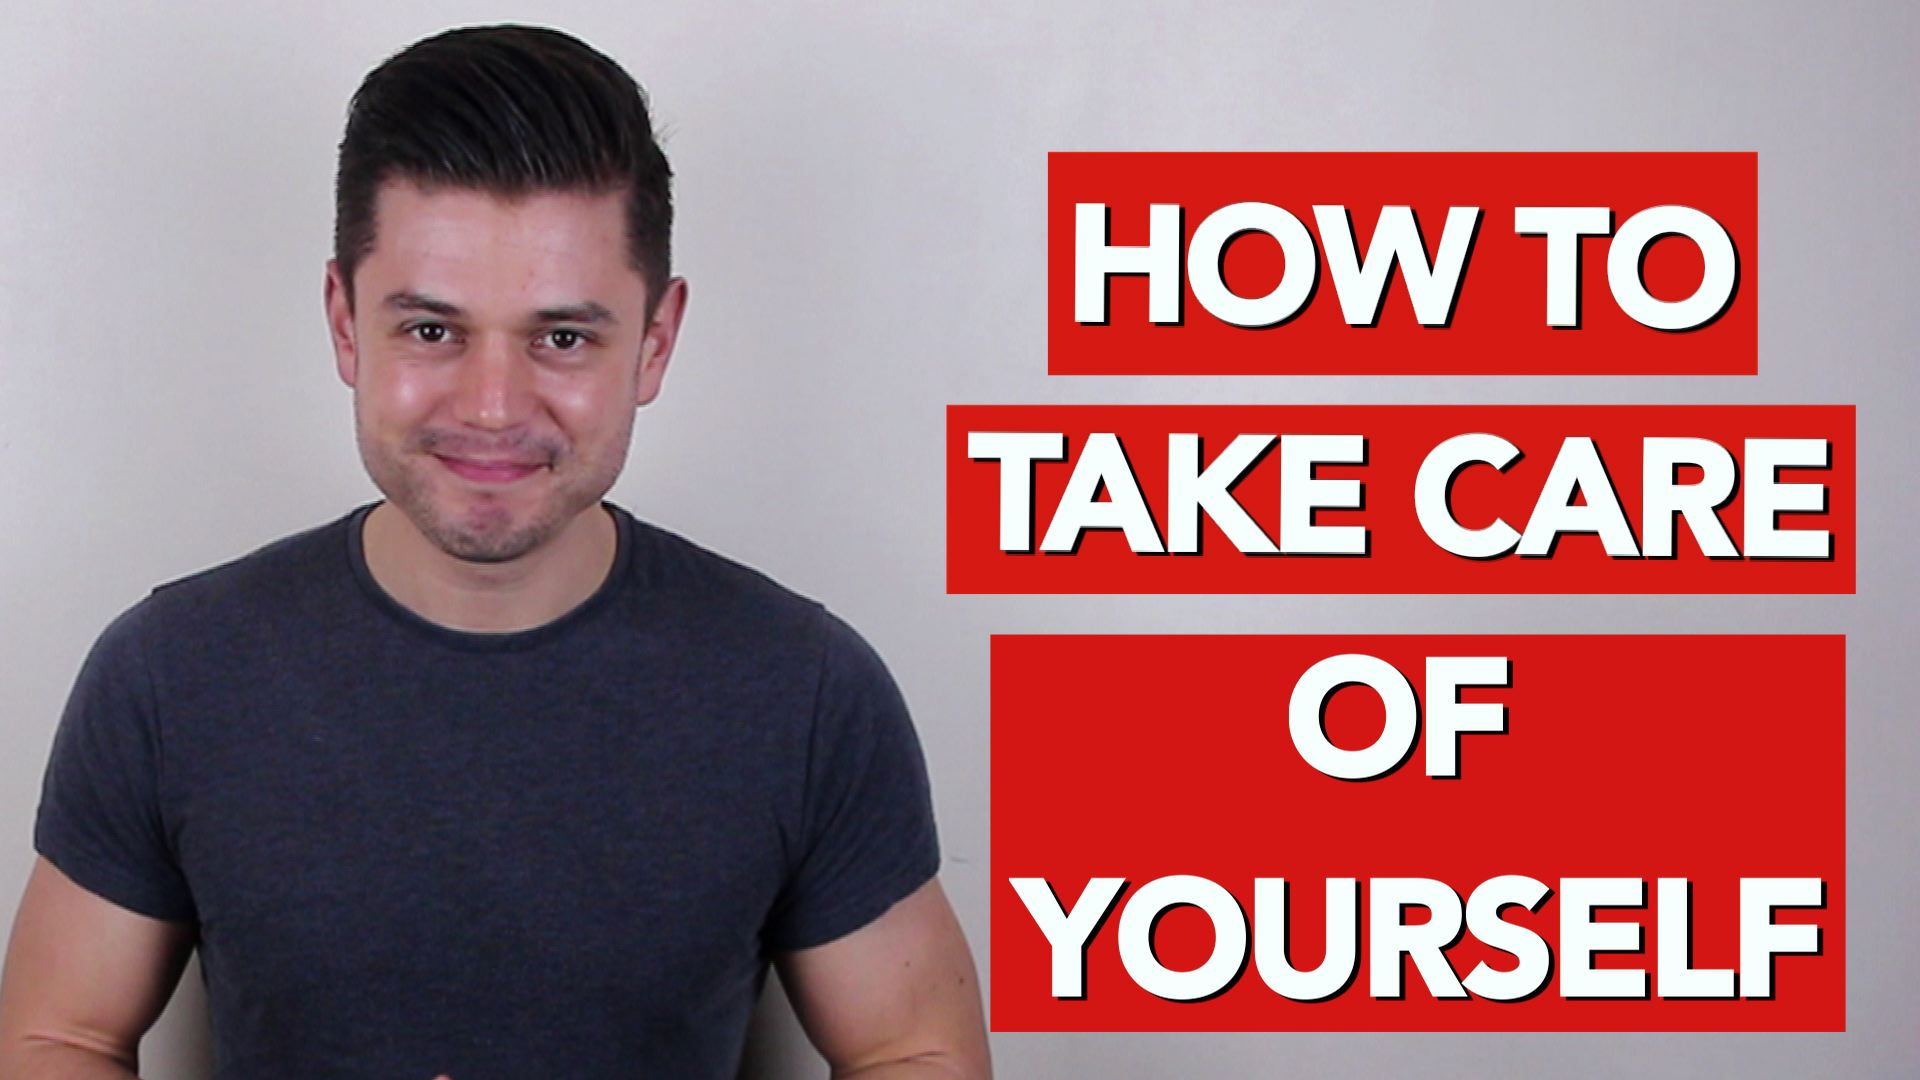 How to take care of yourself as a man